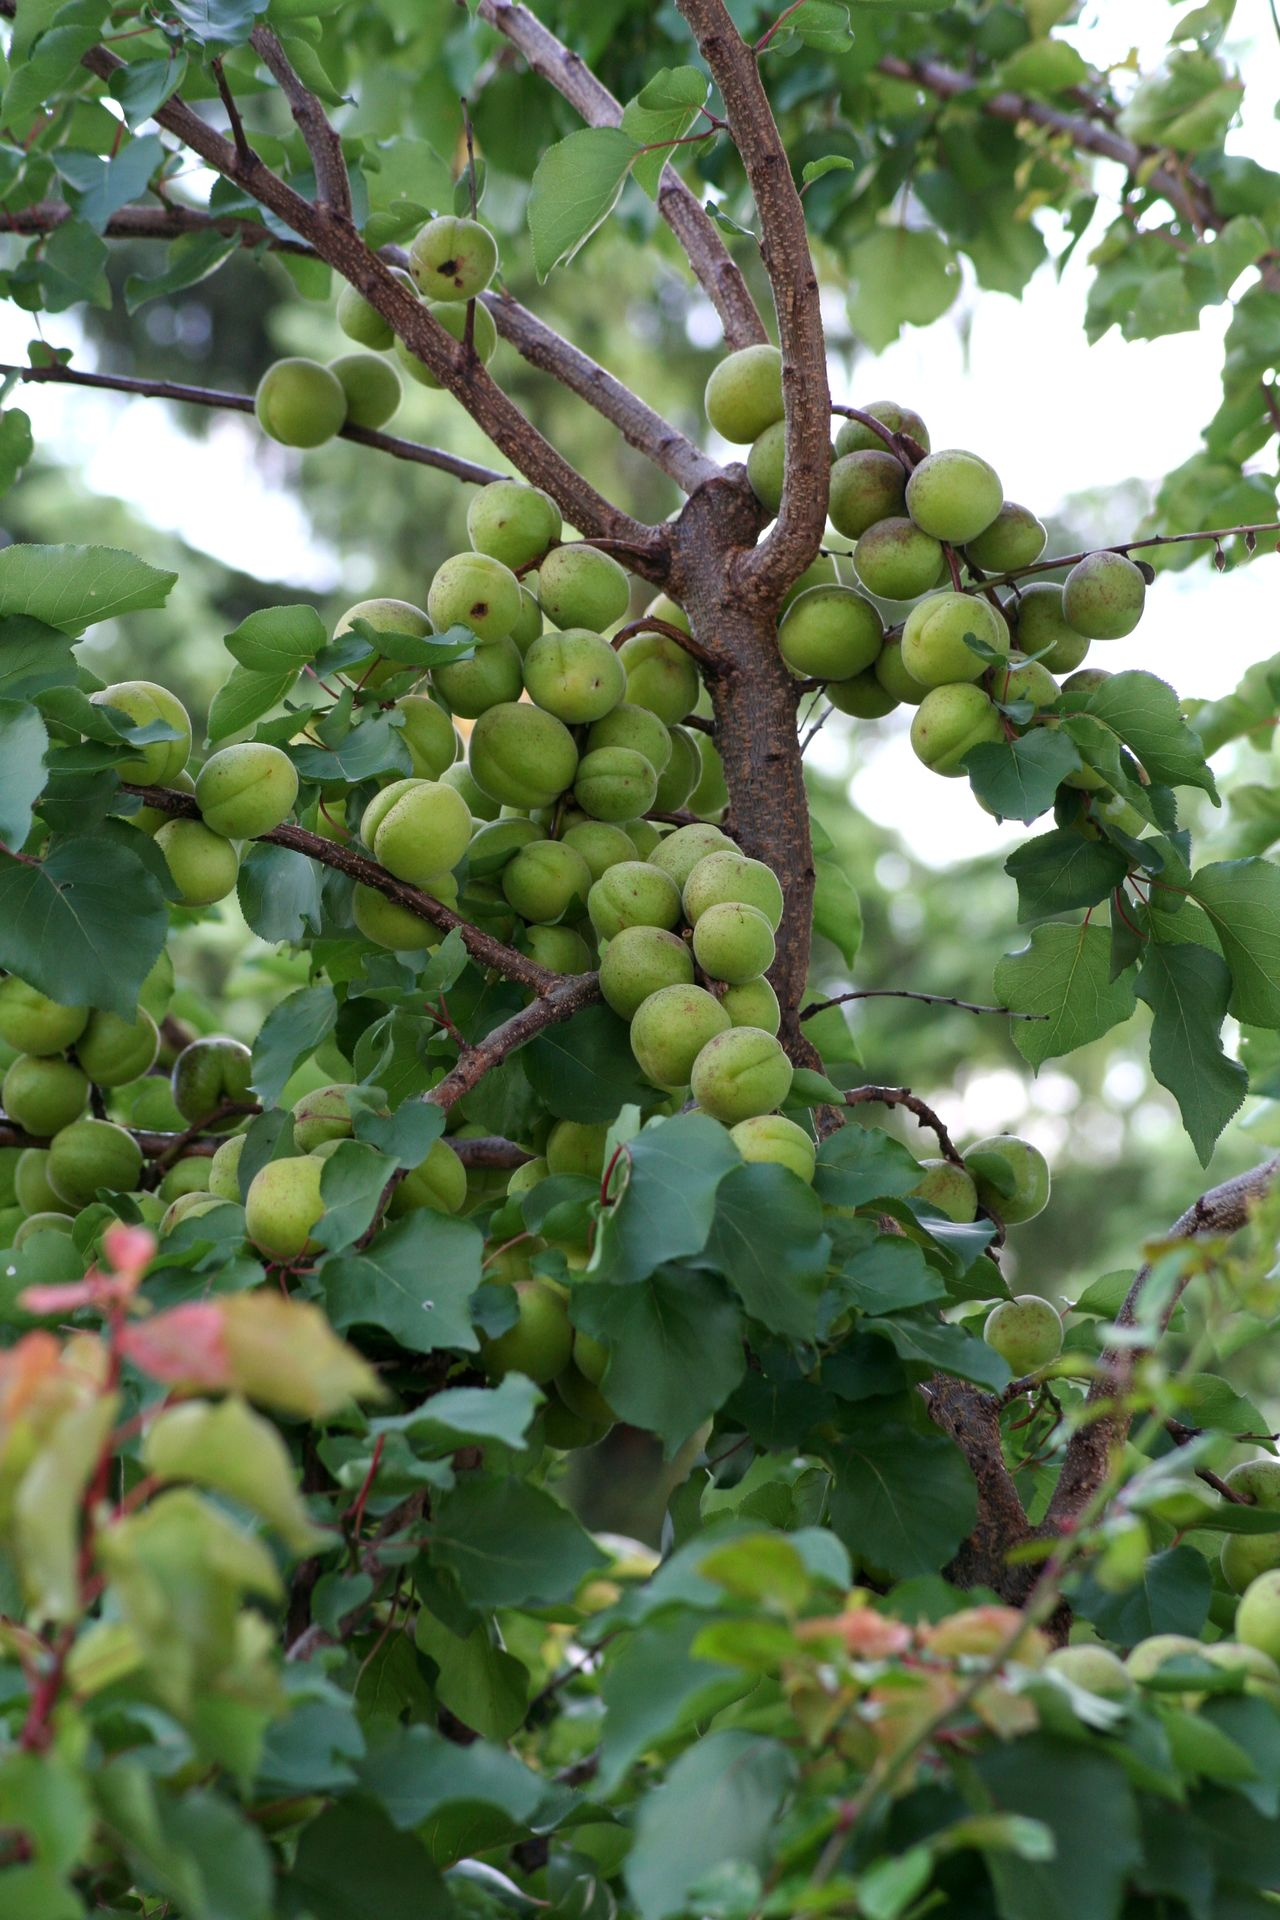 Abundance Agriculture Apricot Apricot Tree Branch Bunch Food Food And Drink Freshness Fruit Fruit Tree Green Color Green Fruit Growth Hanging Healthy Eating Healthy Lifestyle Immature  Raw Ripe Selective Focus Sky Tree Unripe Unripe Apricot